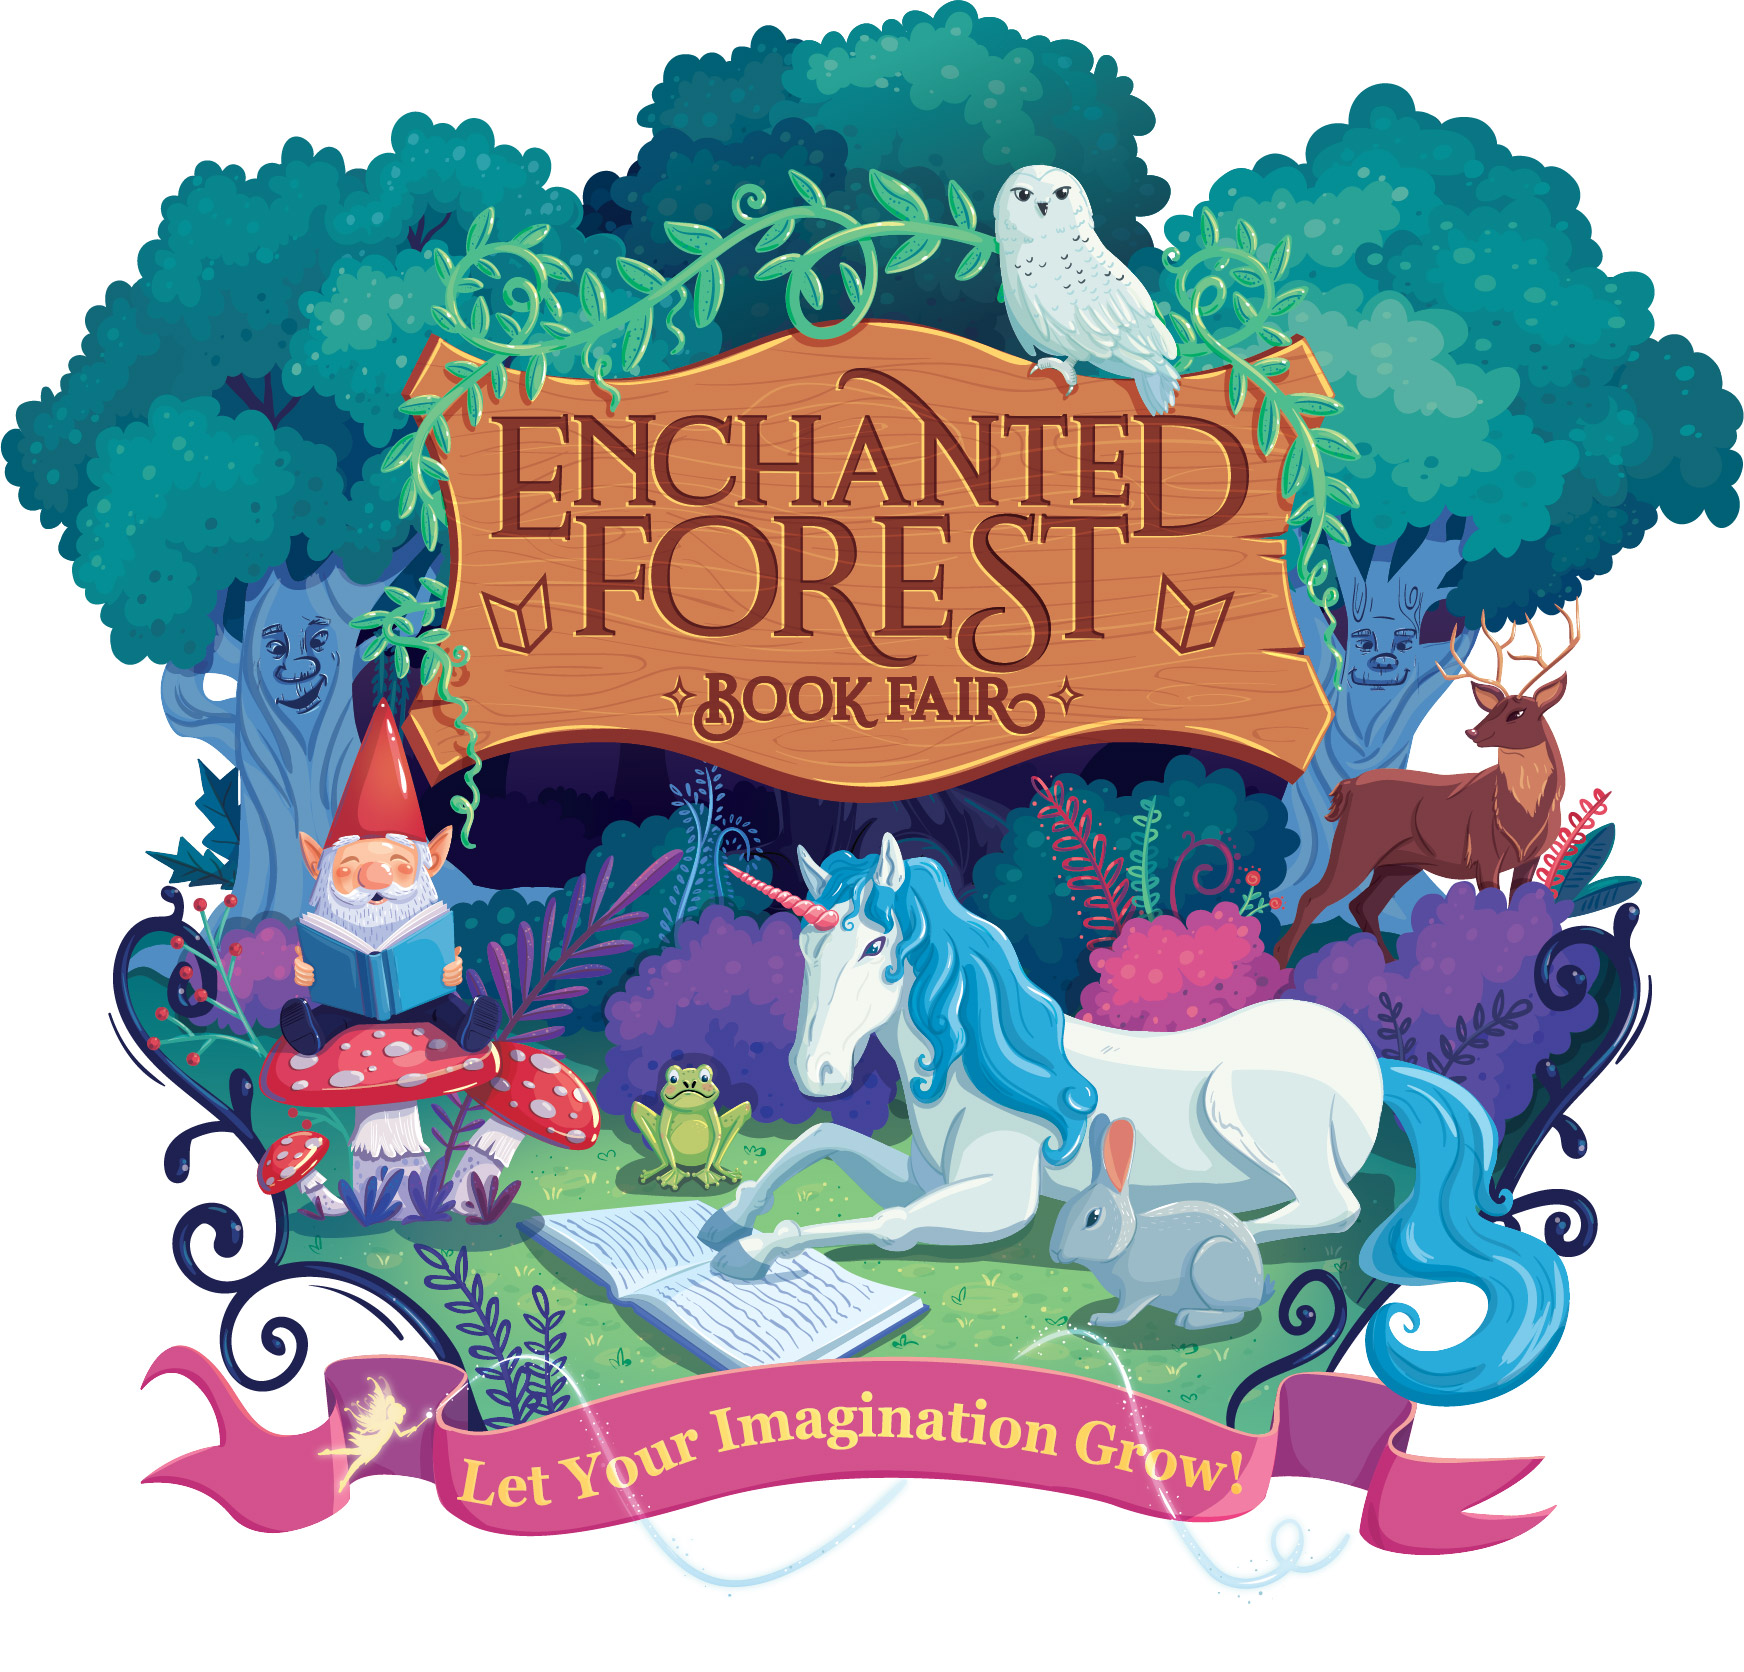 Enchanted Forest Book Fair: Let Your Imagination Grow.